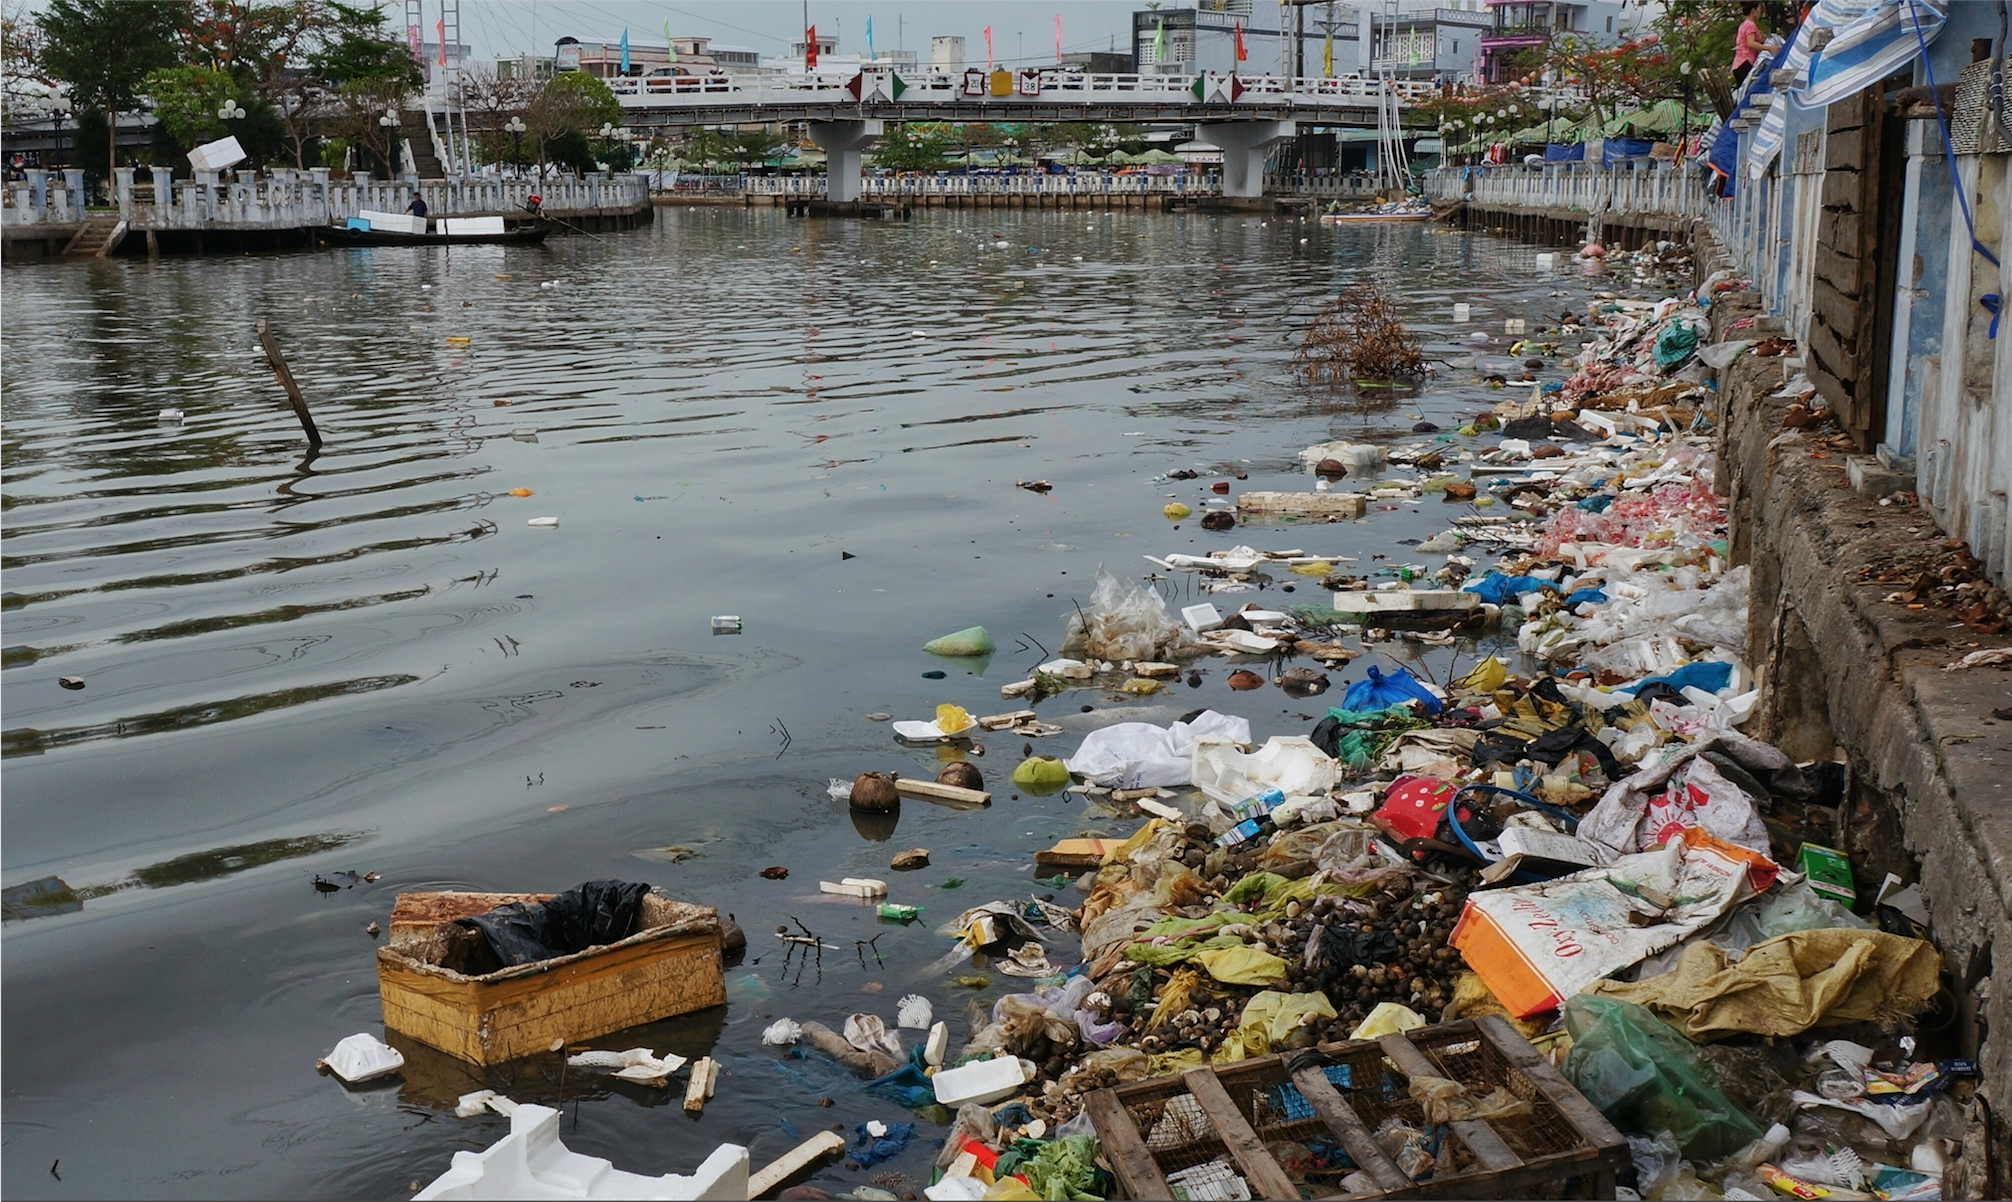 Plastic waste in the Mekong River (Shutterstock)